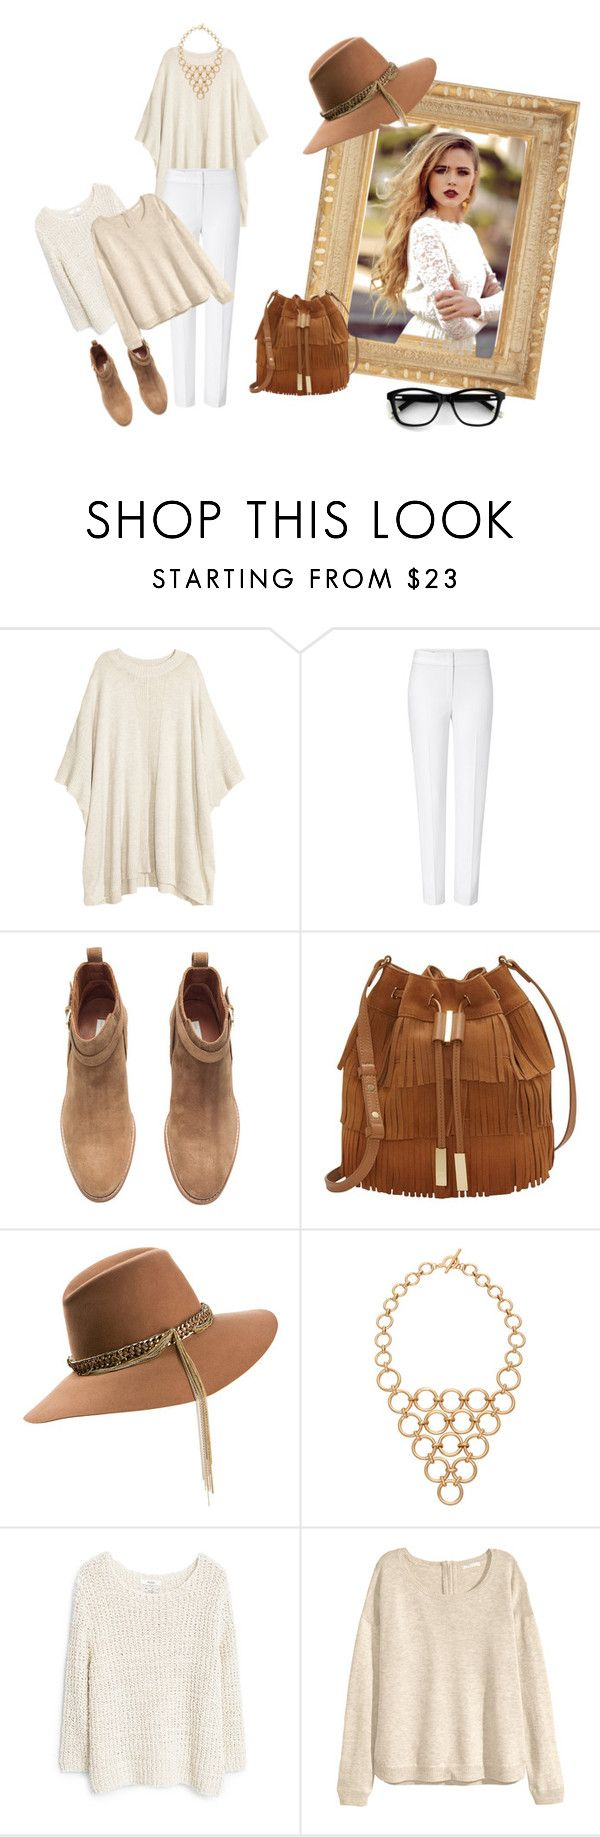 """Winter Whites  #1"" by jajalamajala ❤ liked on Polyvore featuring H&M, ESCADA, Vince Camuto, Maison Michel and MANGO"